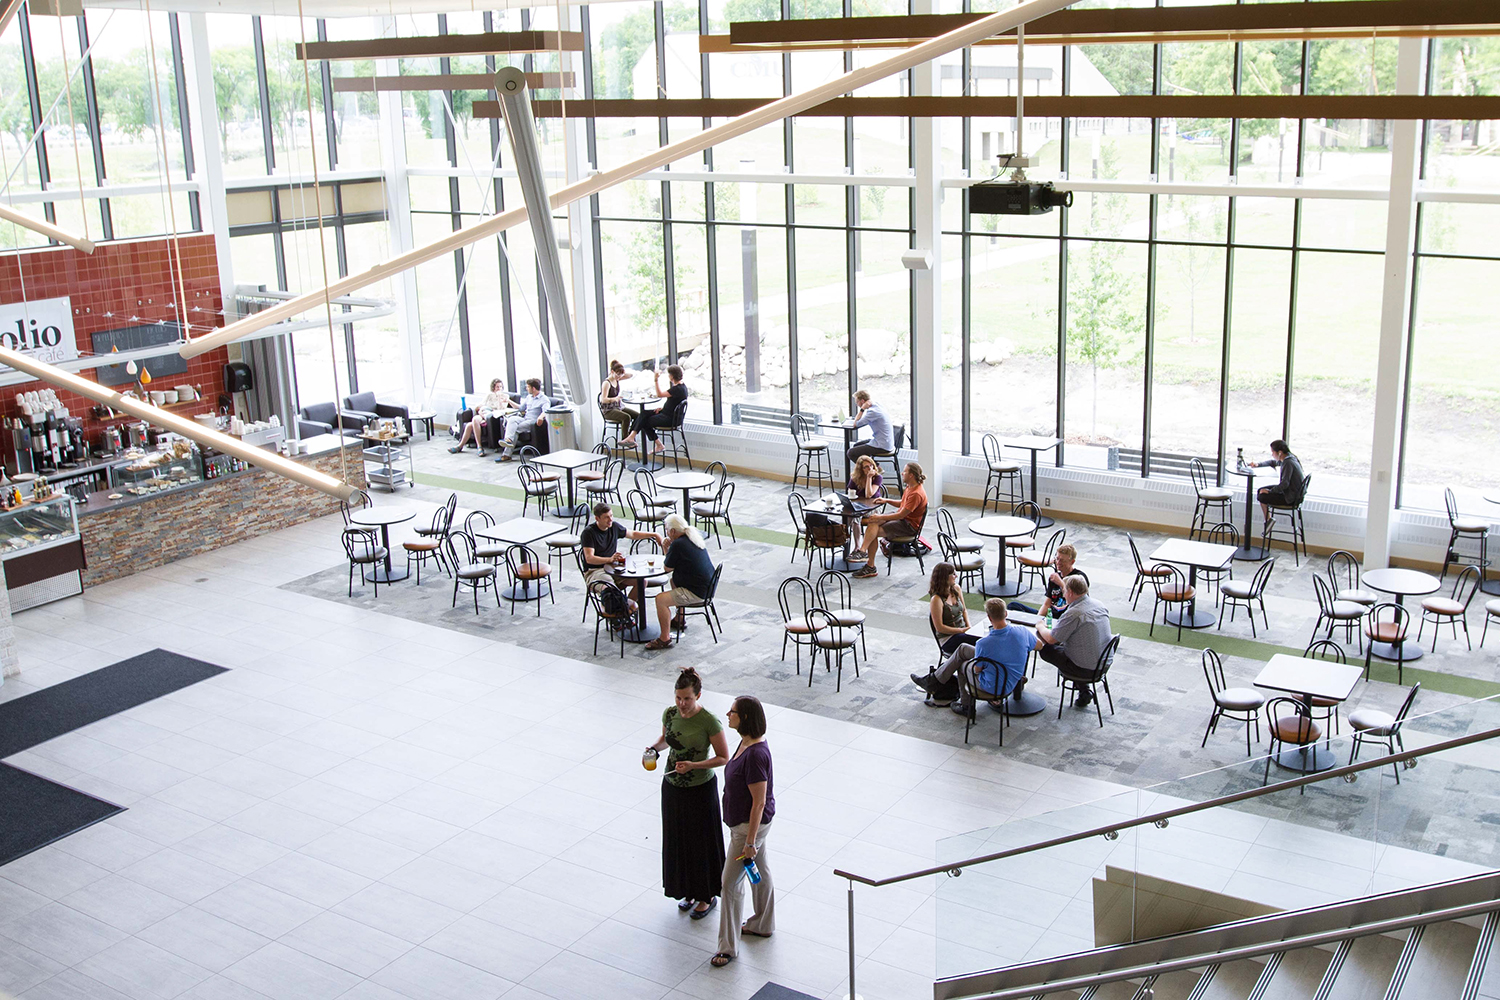 6 study tips — A view of Marpeck Commons from the Mezzanine level, down to the tables and chairs below, with Folio Cafe and the wall of glass letting in so much natural light.